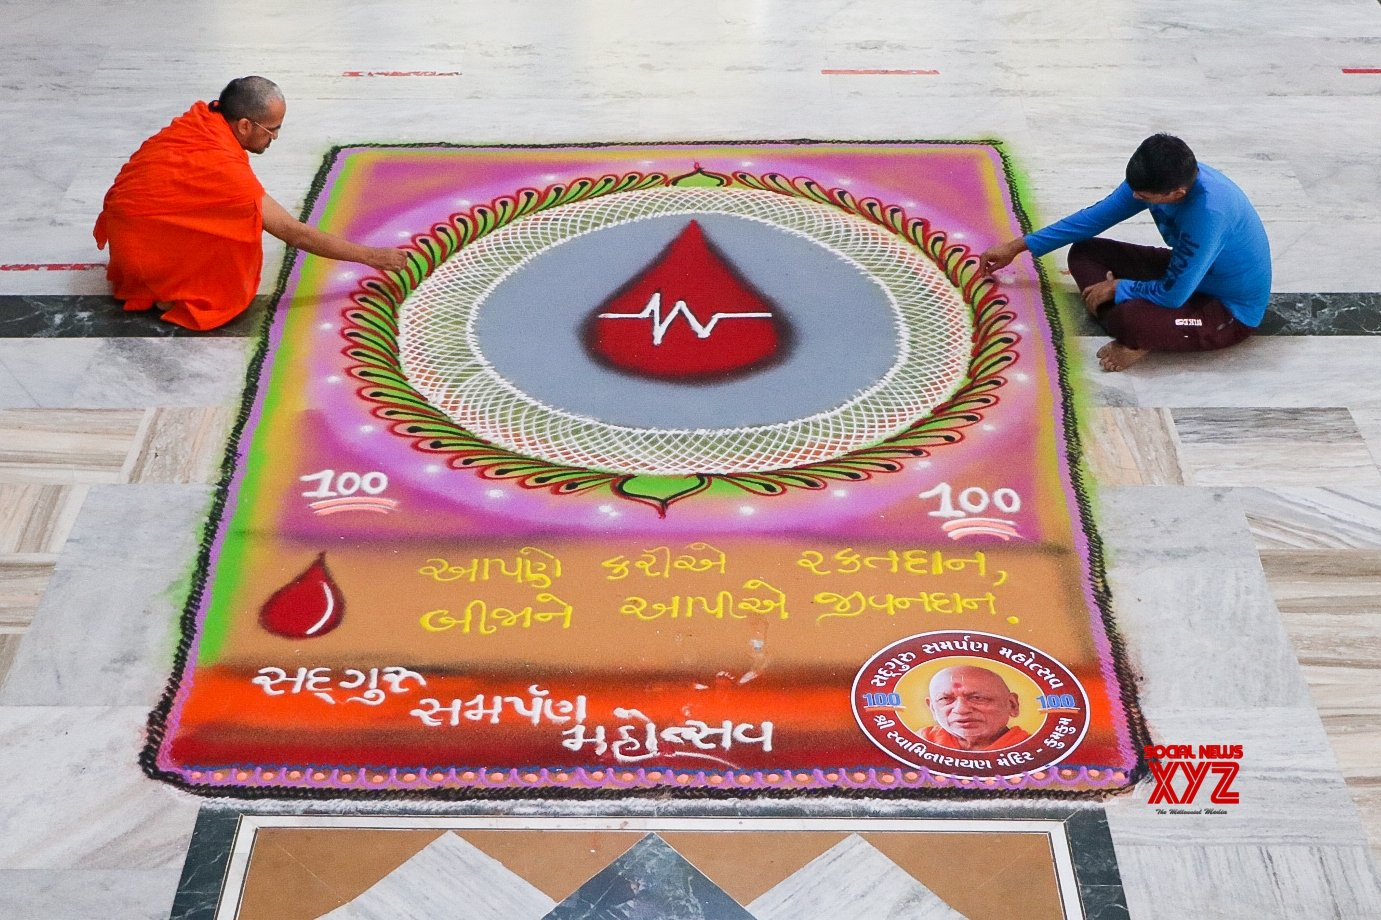 : Ahmedabad :Swaminarayan saints and others give final touches to 1410 ft Rangoli on the theme of Donate blood, save life at a Kumkum Swaminarayan temple Source : AD SS #Gallery